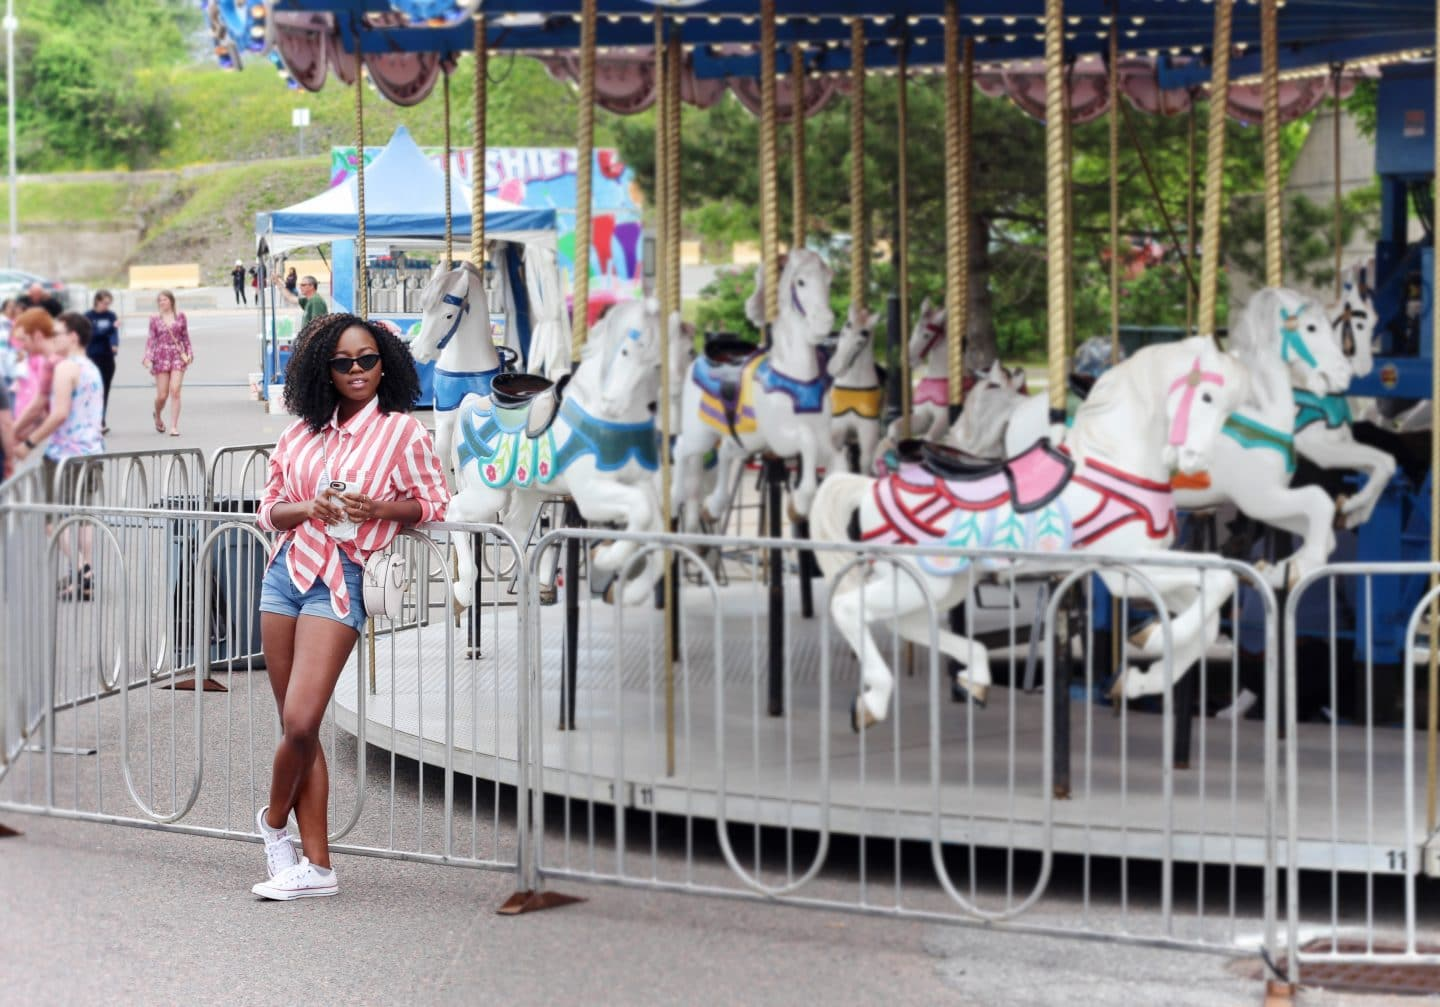 what to wear to an amusement park